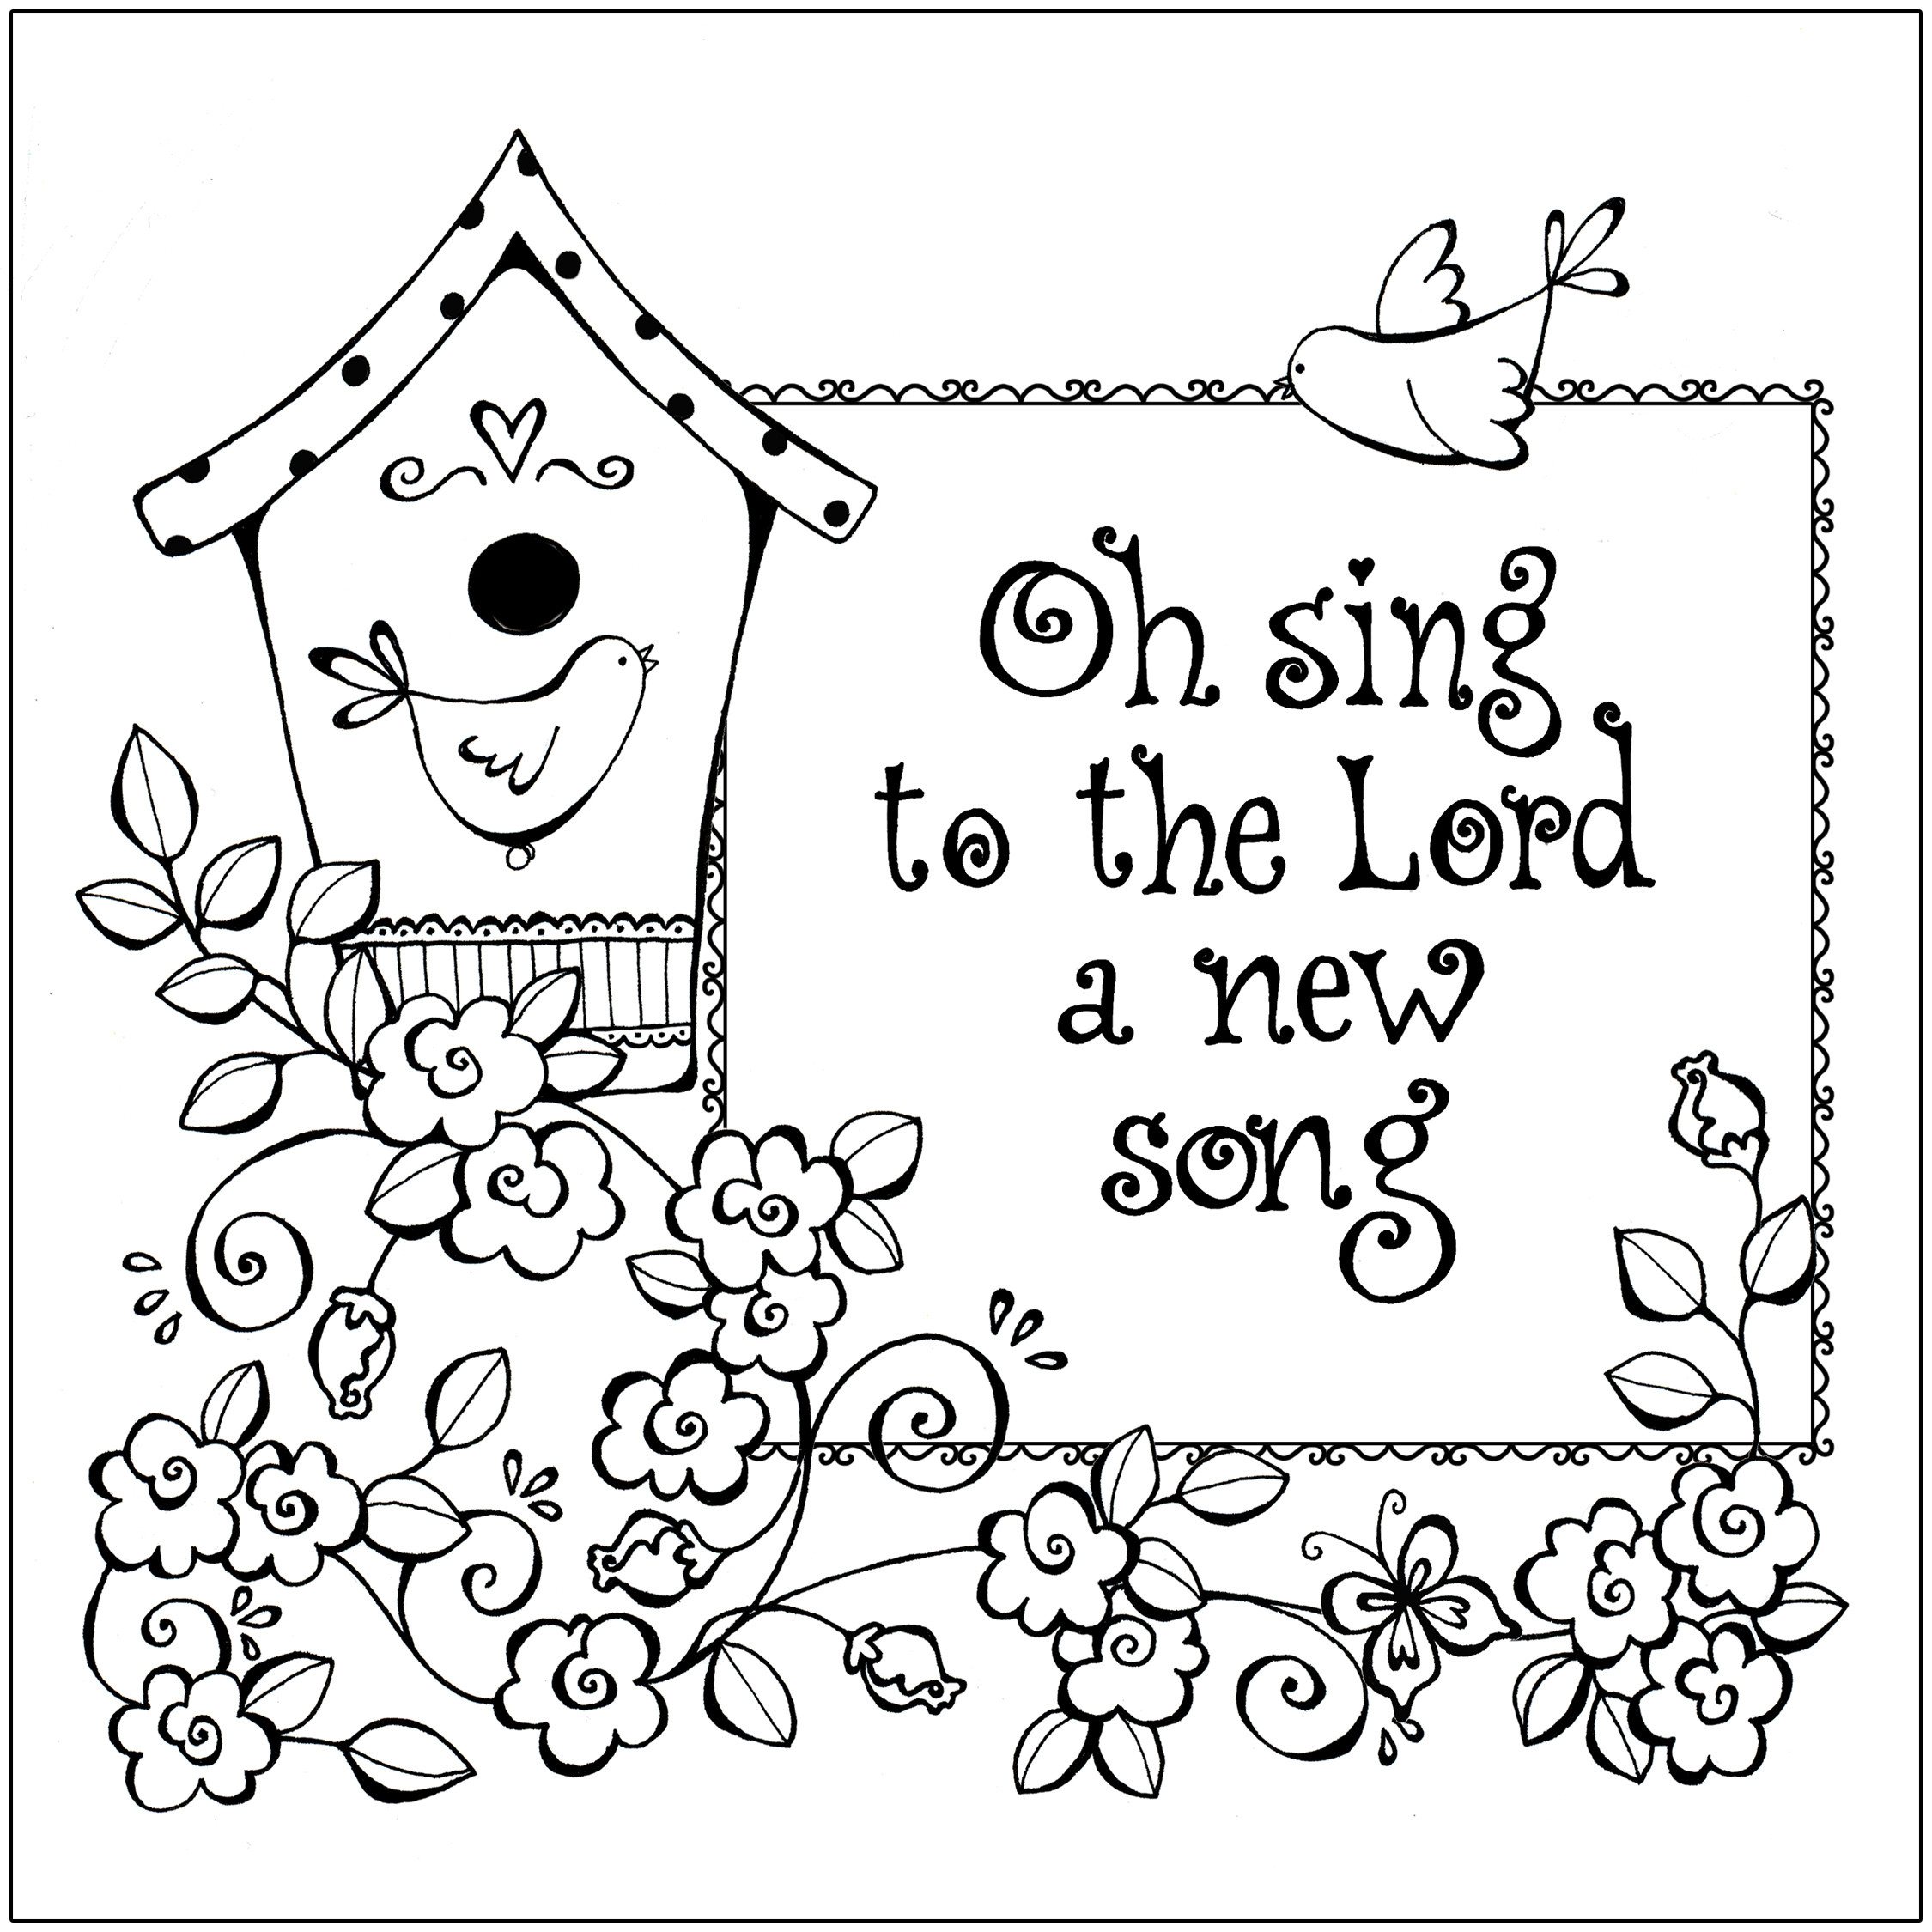 Free Coloring Pages Church  Free Printable Christian Coloring Pages for Kids Best